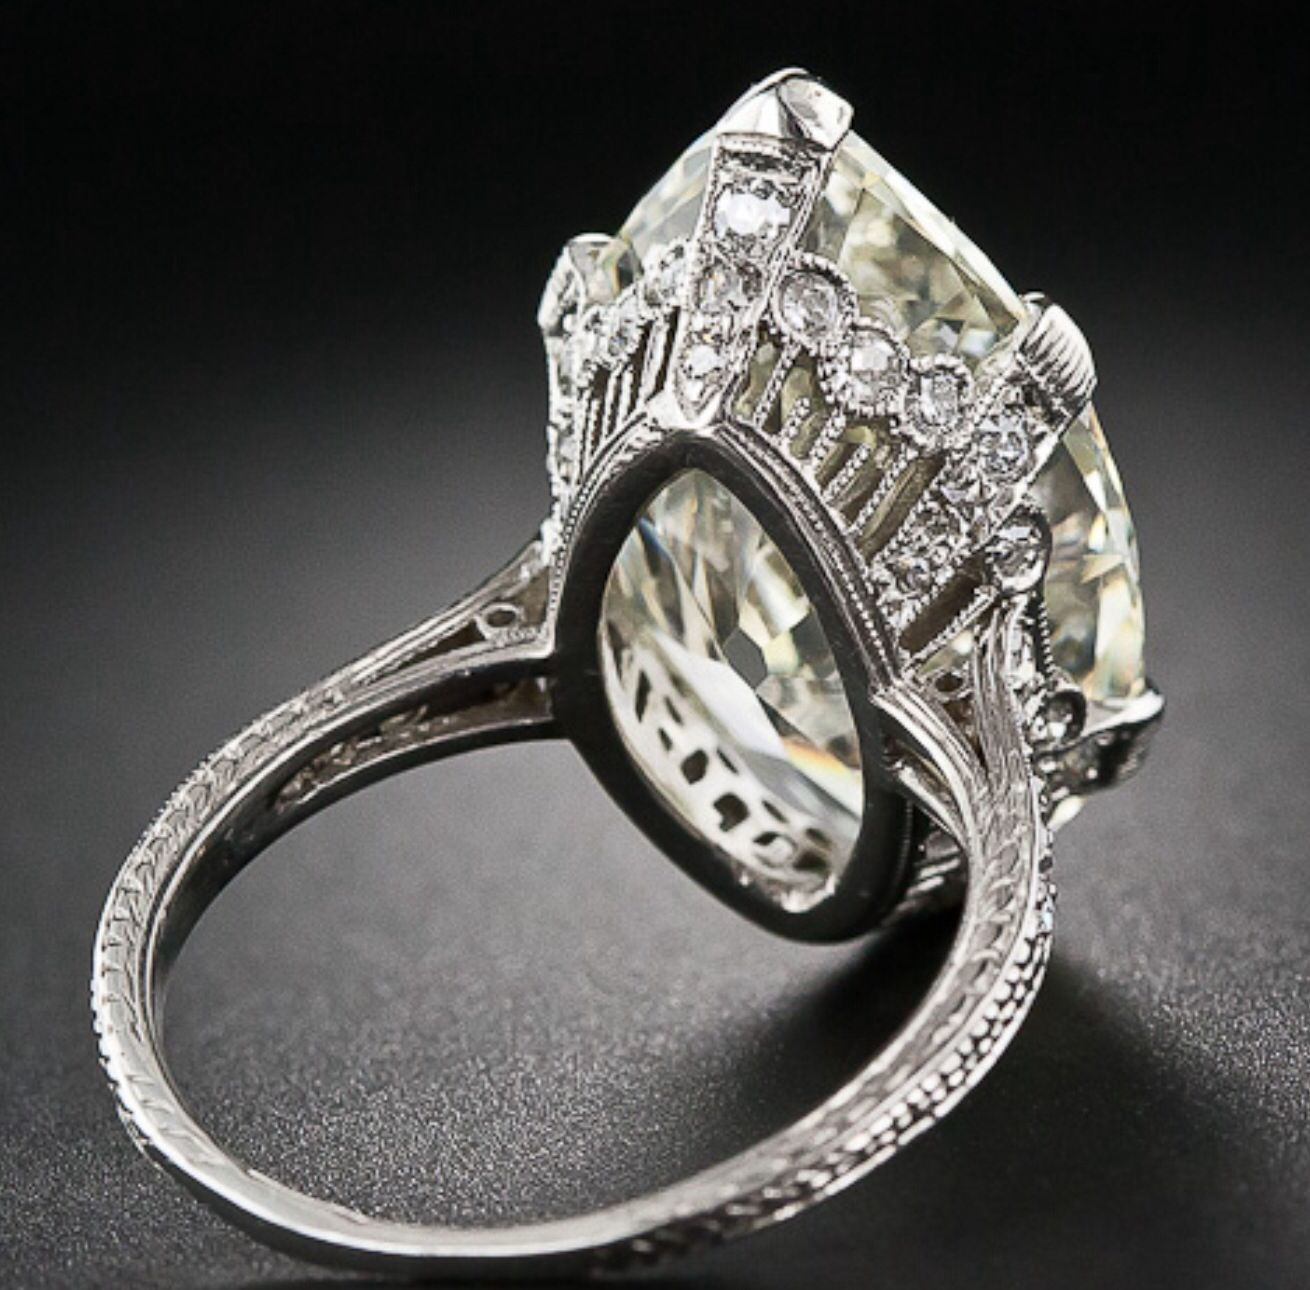 Back View. 9.55 MarquiseOval Diamond Ring Vintage oval